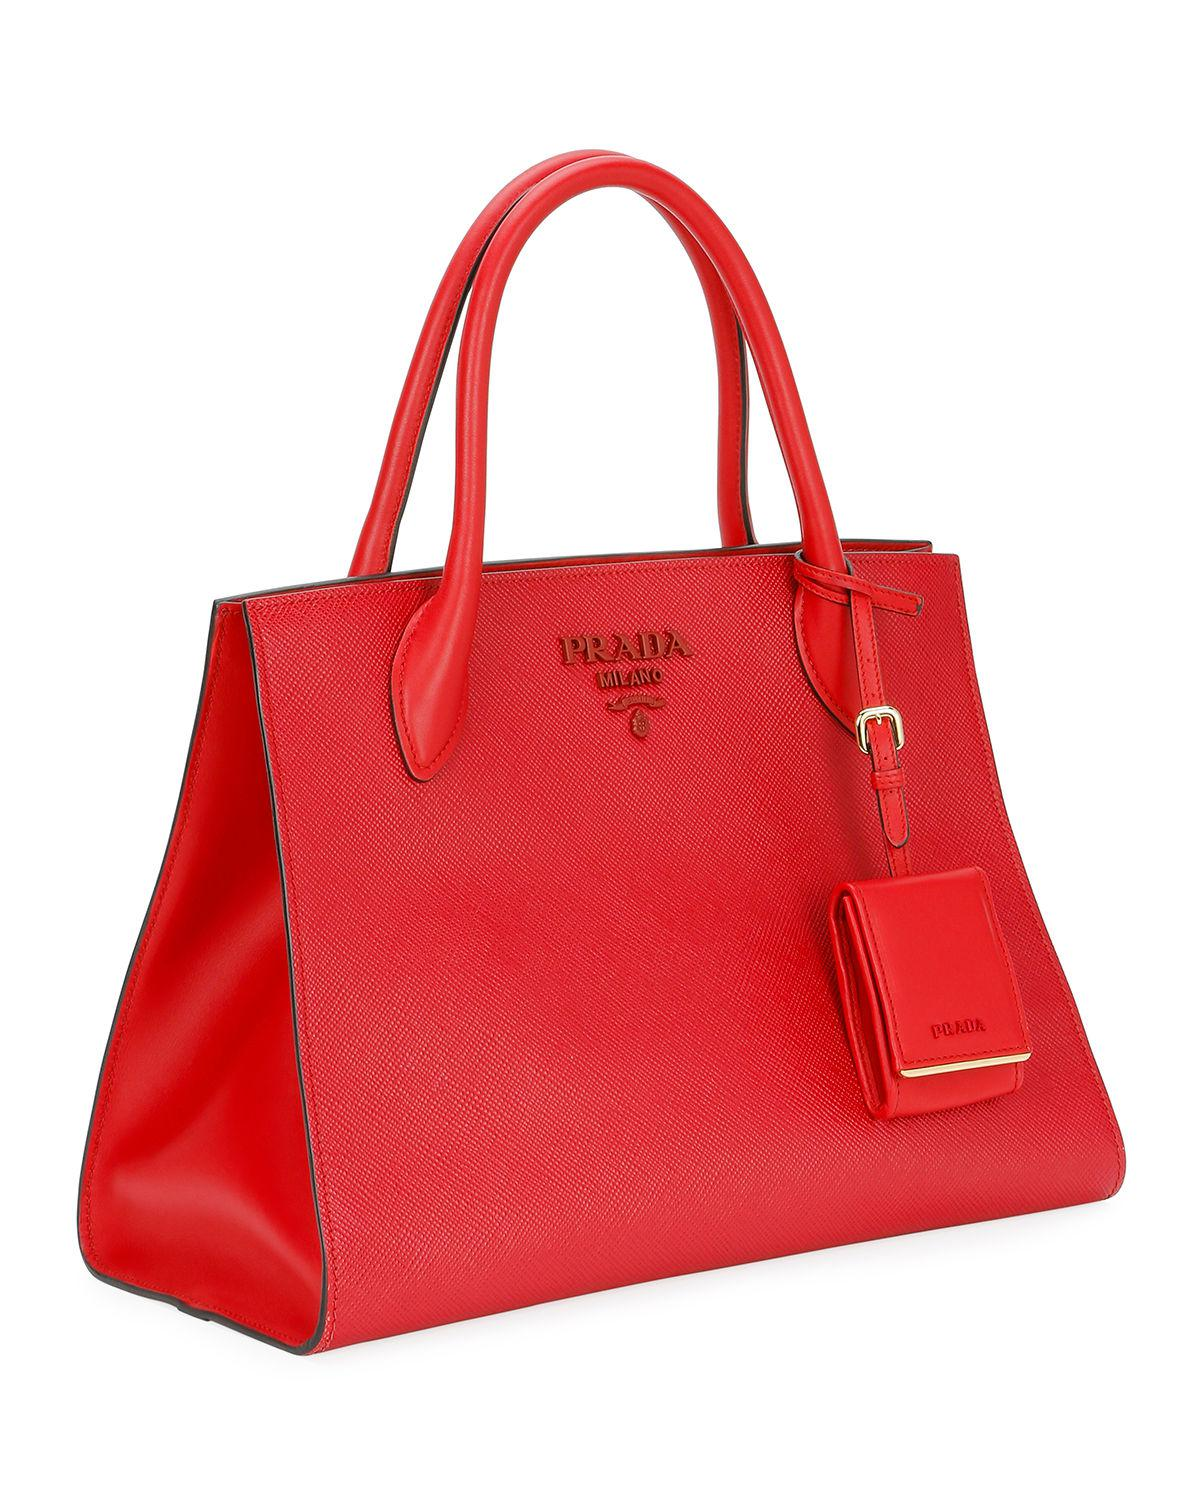 5c9566b3fbae6 Prada Red Large Monochrome Tote W/ Removable Crossbody Strap. View  fullscreen